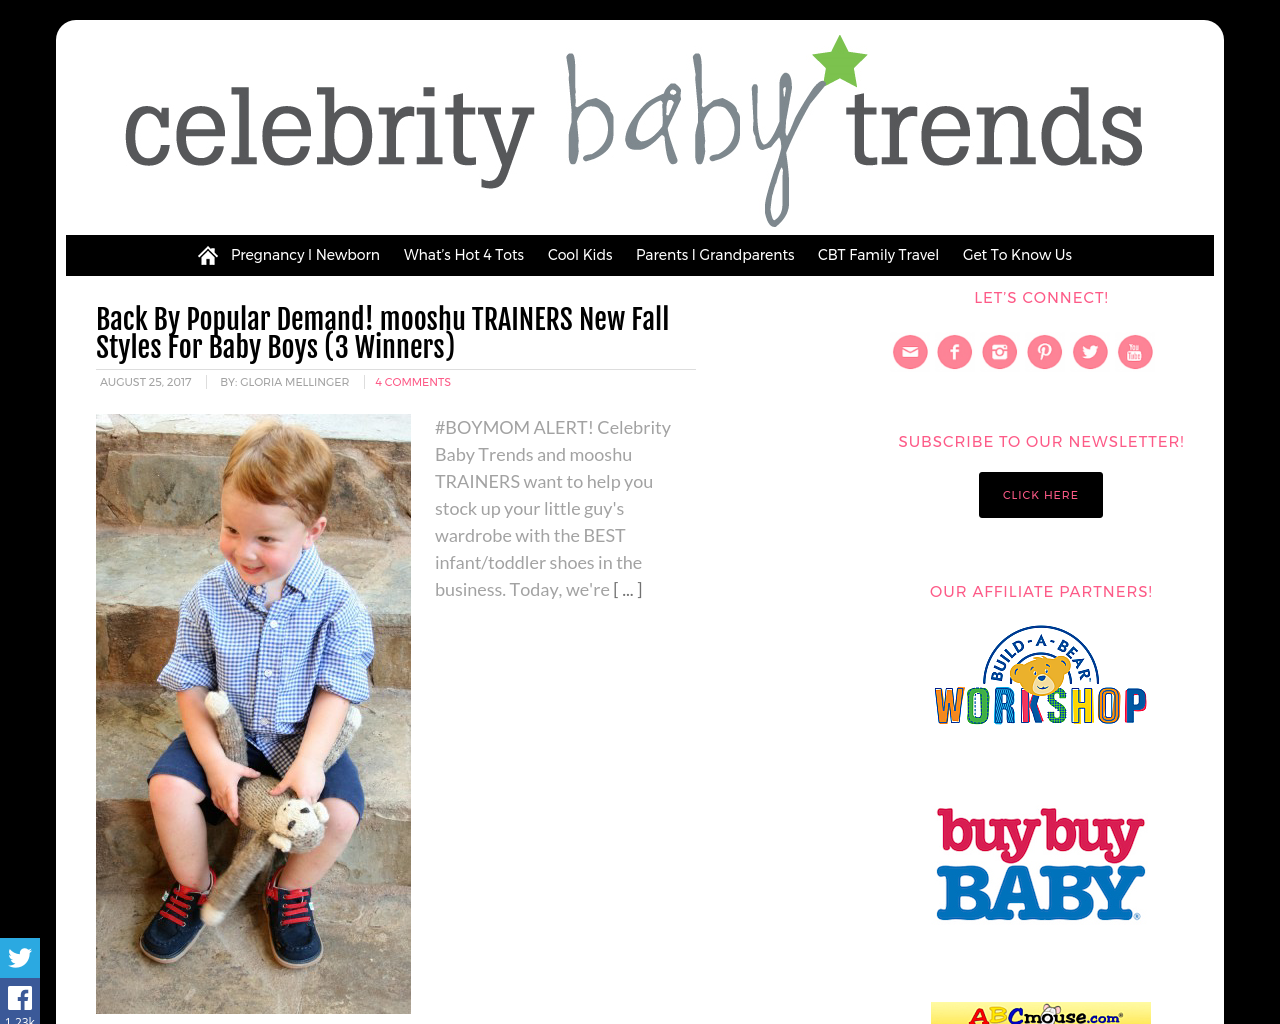 Celebrity-Baby-Trends-Advertising-Reviews-Pricing